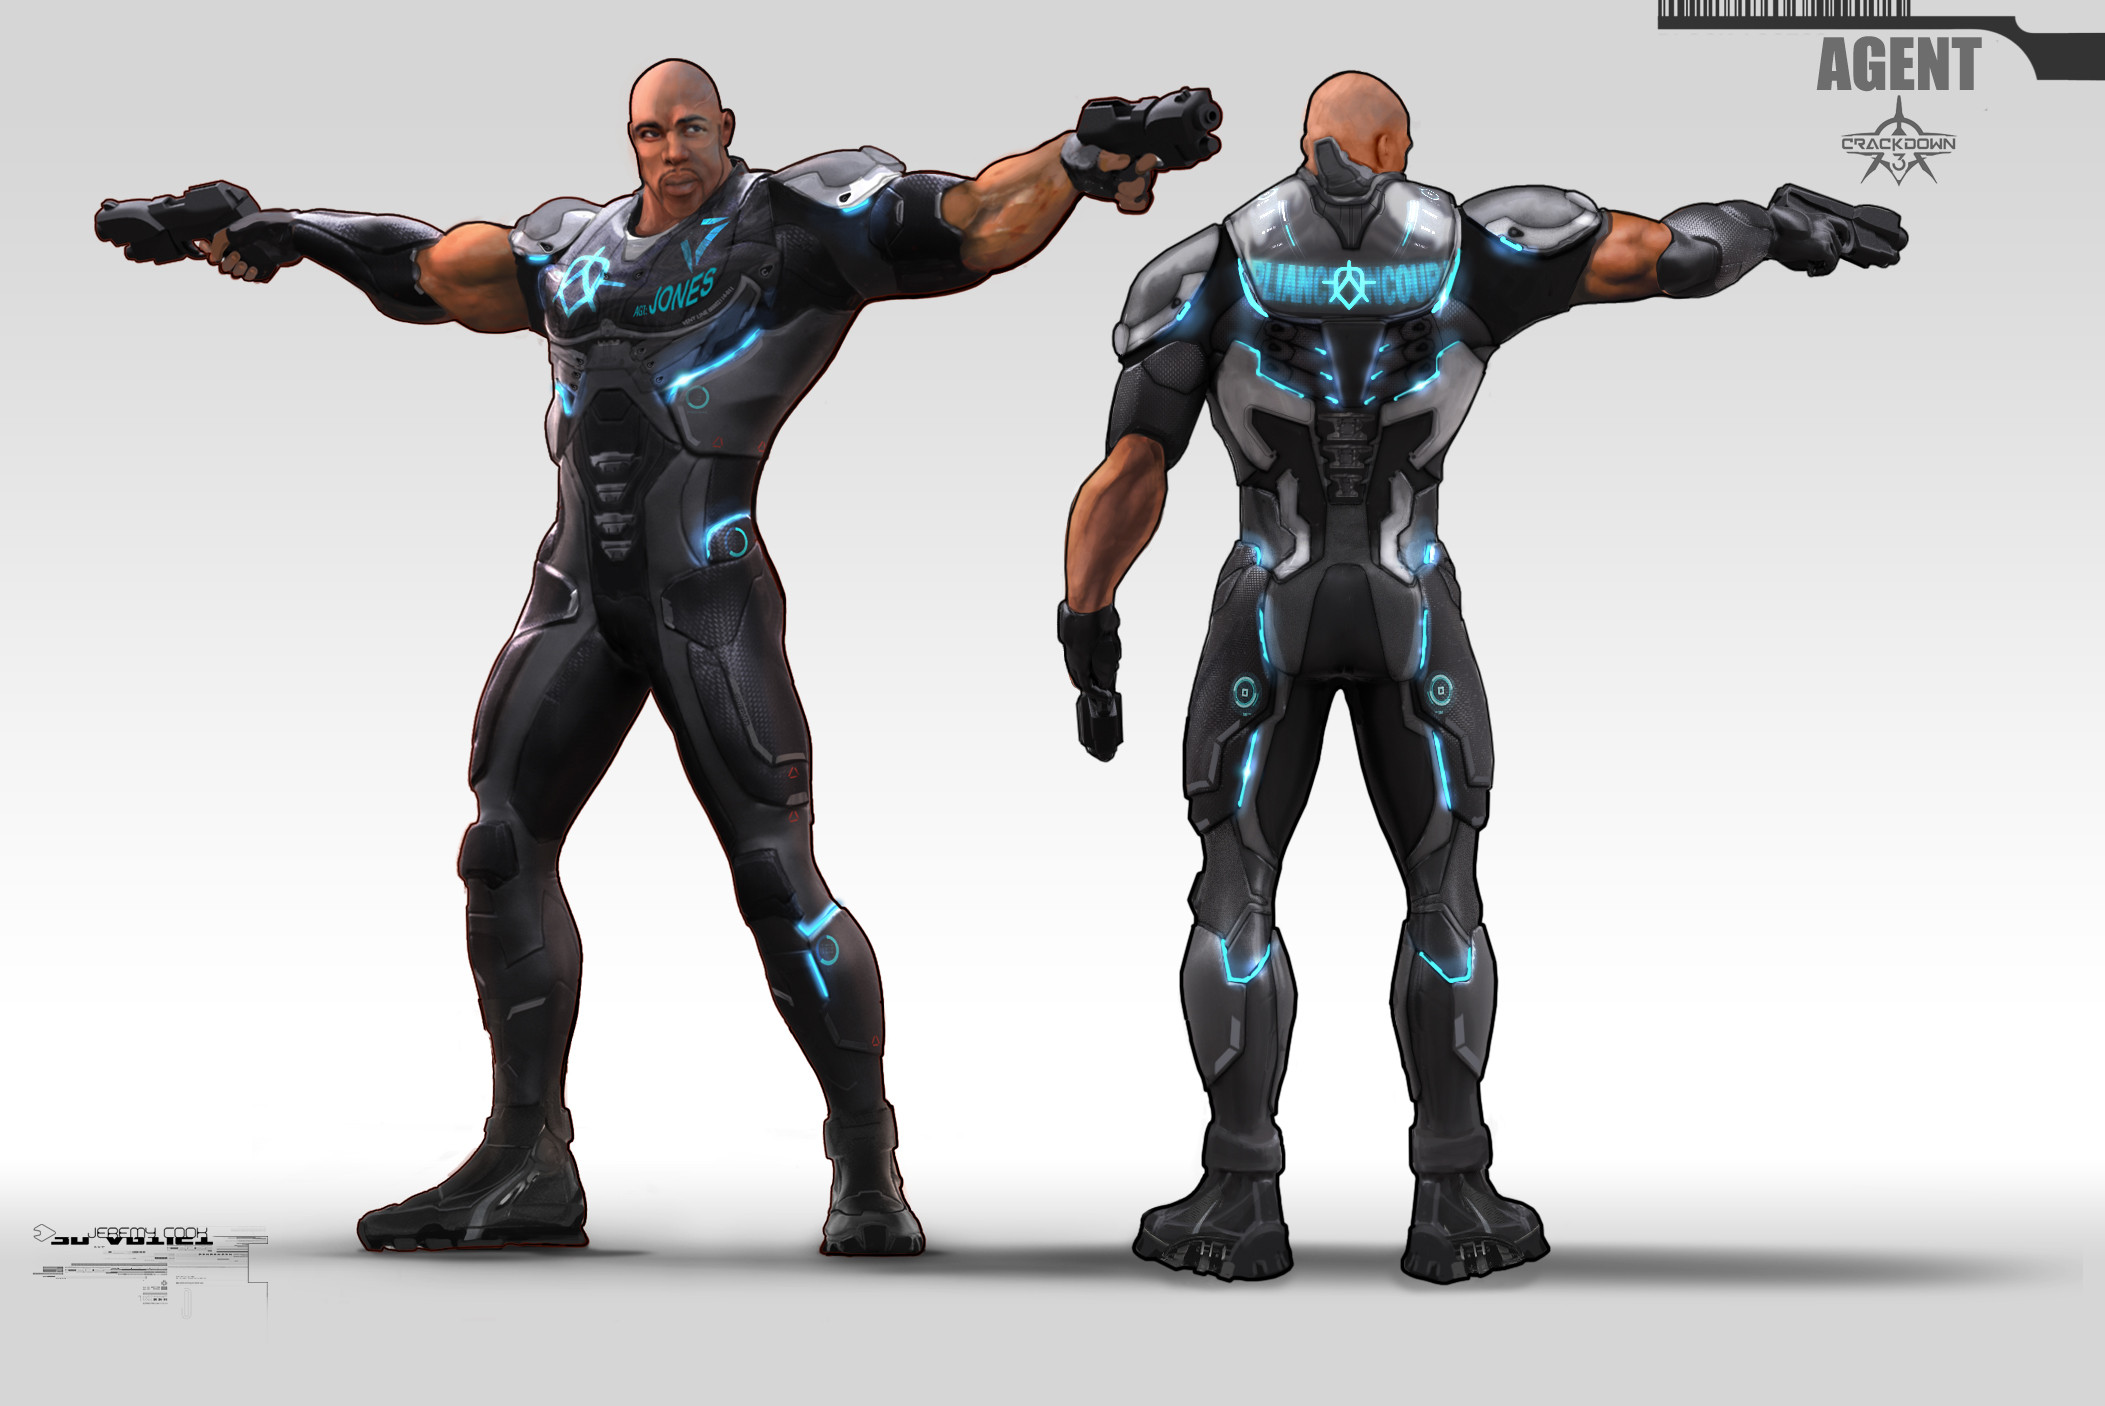 Early concept for Agent armor design.